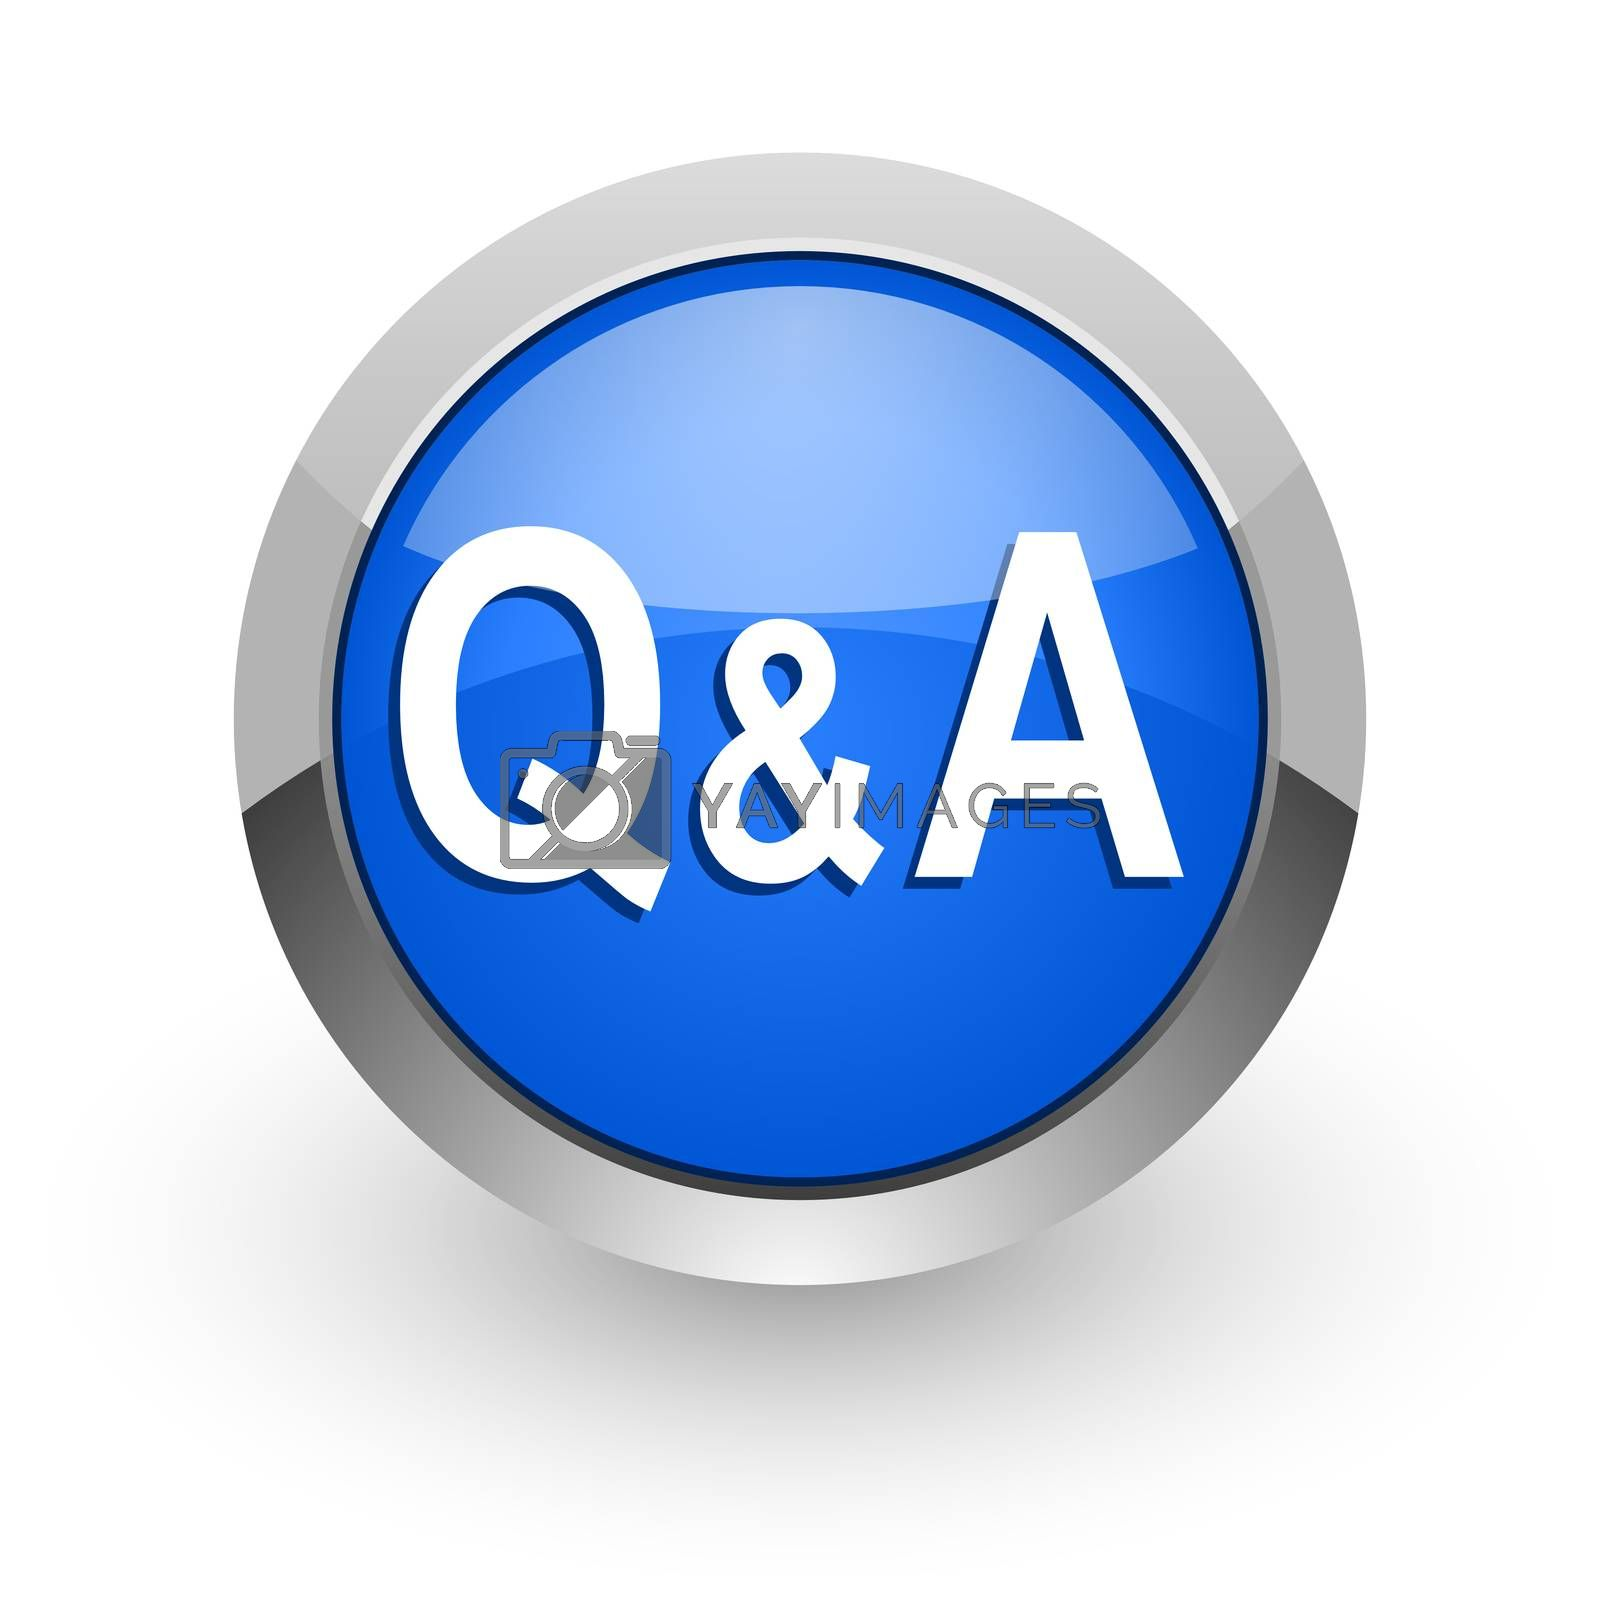 Royalty free image of question answer blue glossy web icon by alexwhite